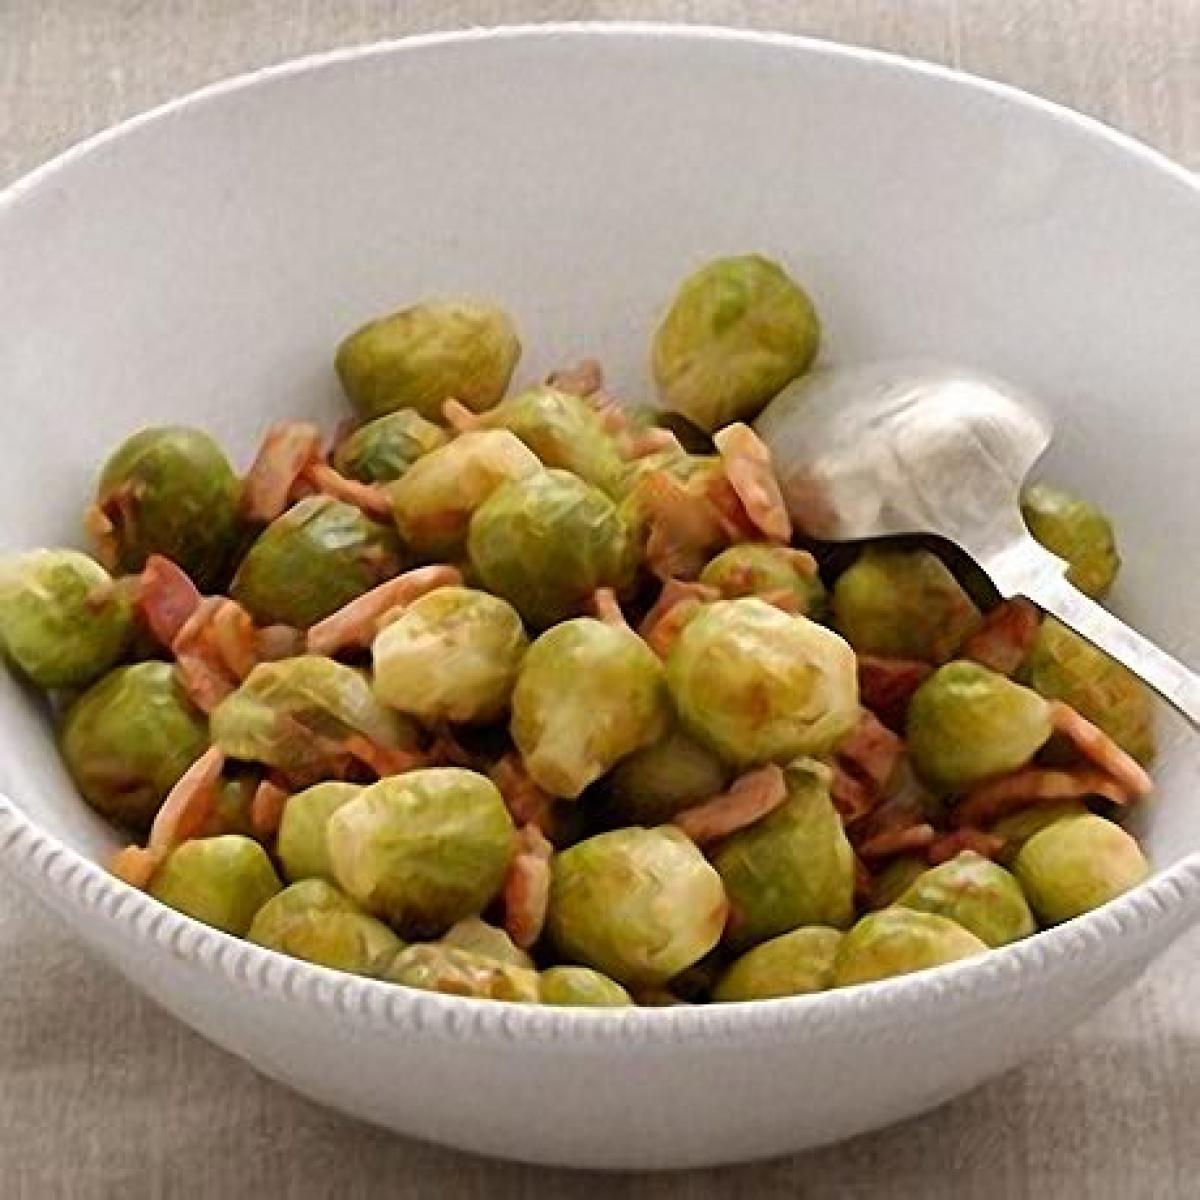 Old image delia smiths christmas brussels sprouts in reisling with bacon